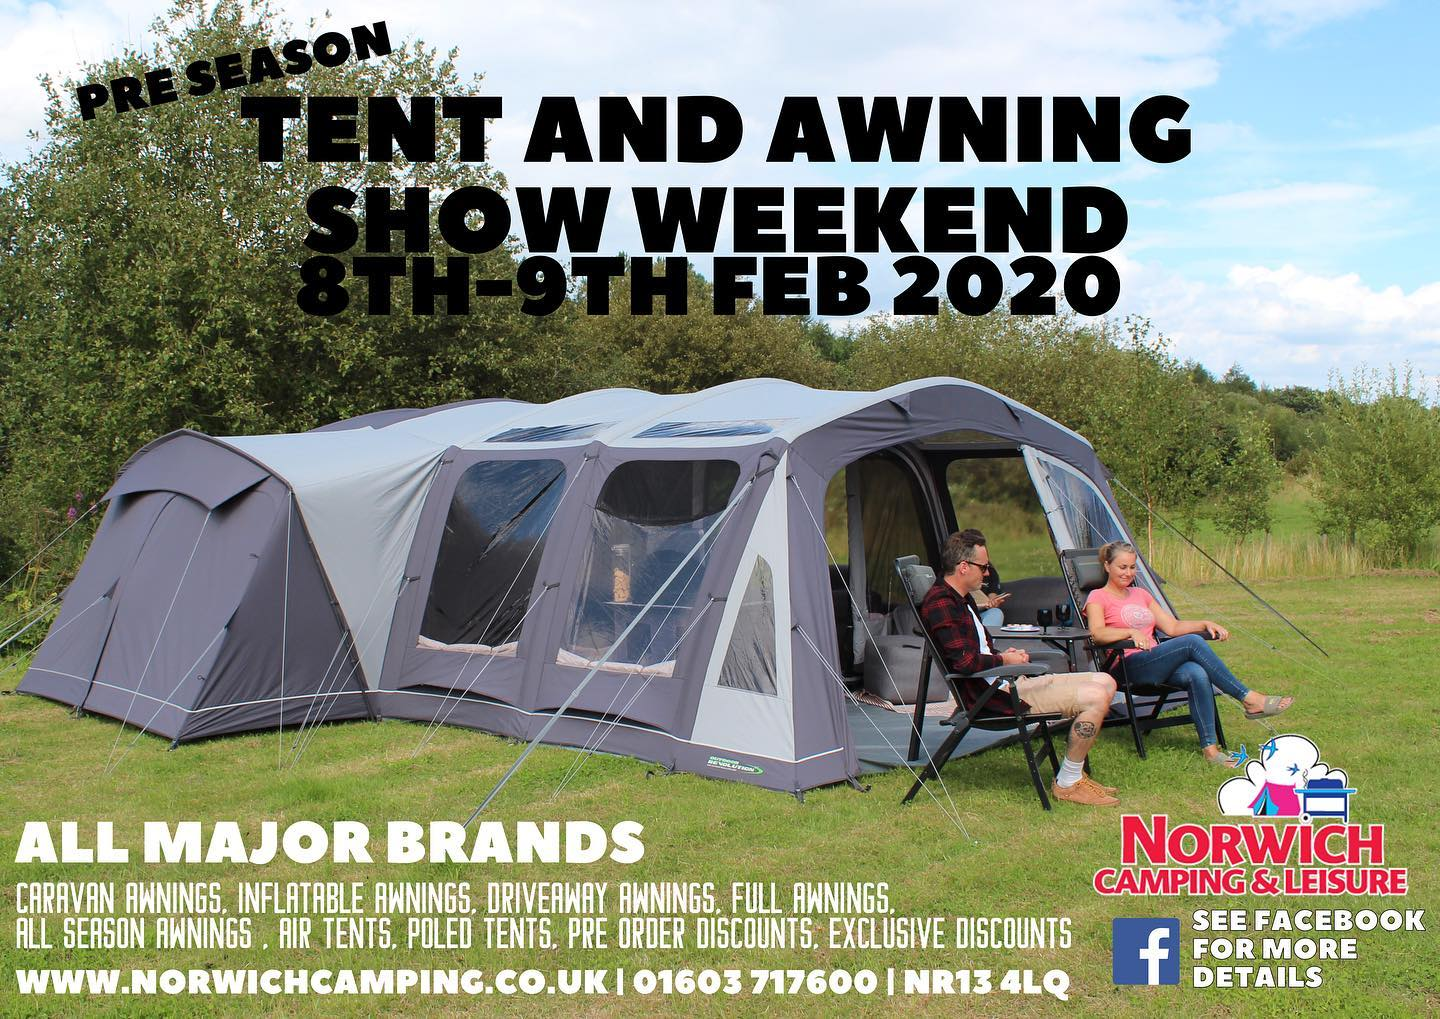 Pre Season tent & Awning Show Weekend, Norwich Camping & Leisure, 58 Yarmouth Road, Blofield, Norfolk, NR13 4LQ | This show weekend is back for 2020 and is the ideal time to grab a 2019 bargain or see what's new from leading brands for the New year. | Camping, Sale, Caravan, Awning, Camping Supplies, Cadac, Coleman, Kampa, Isabella, Outdoor revolution, Zempire